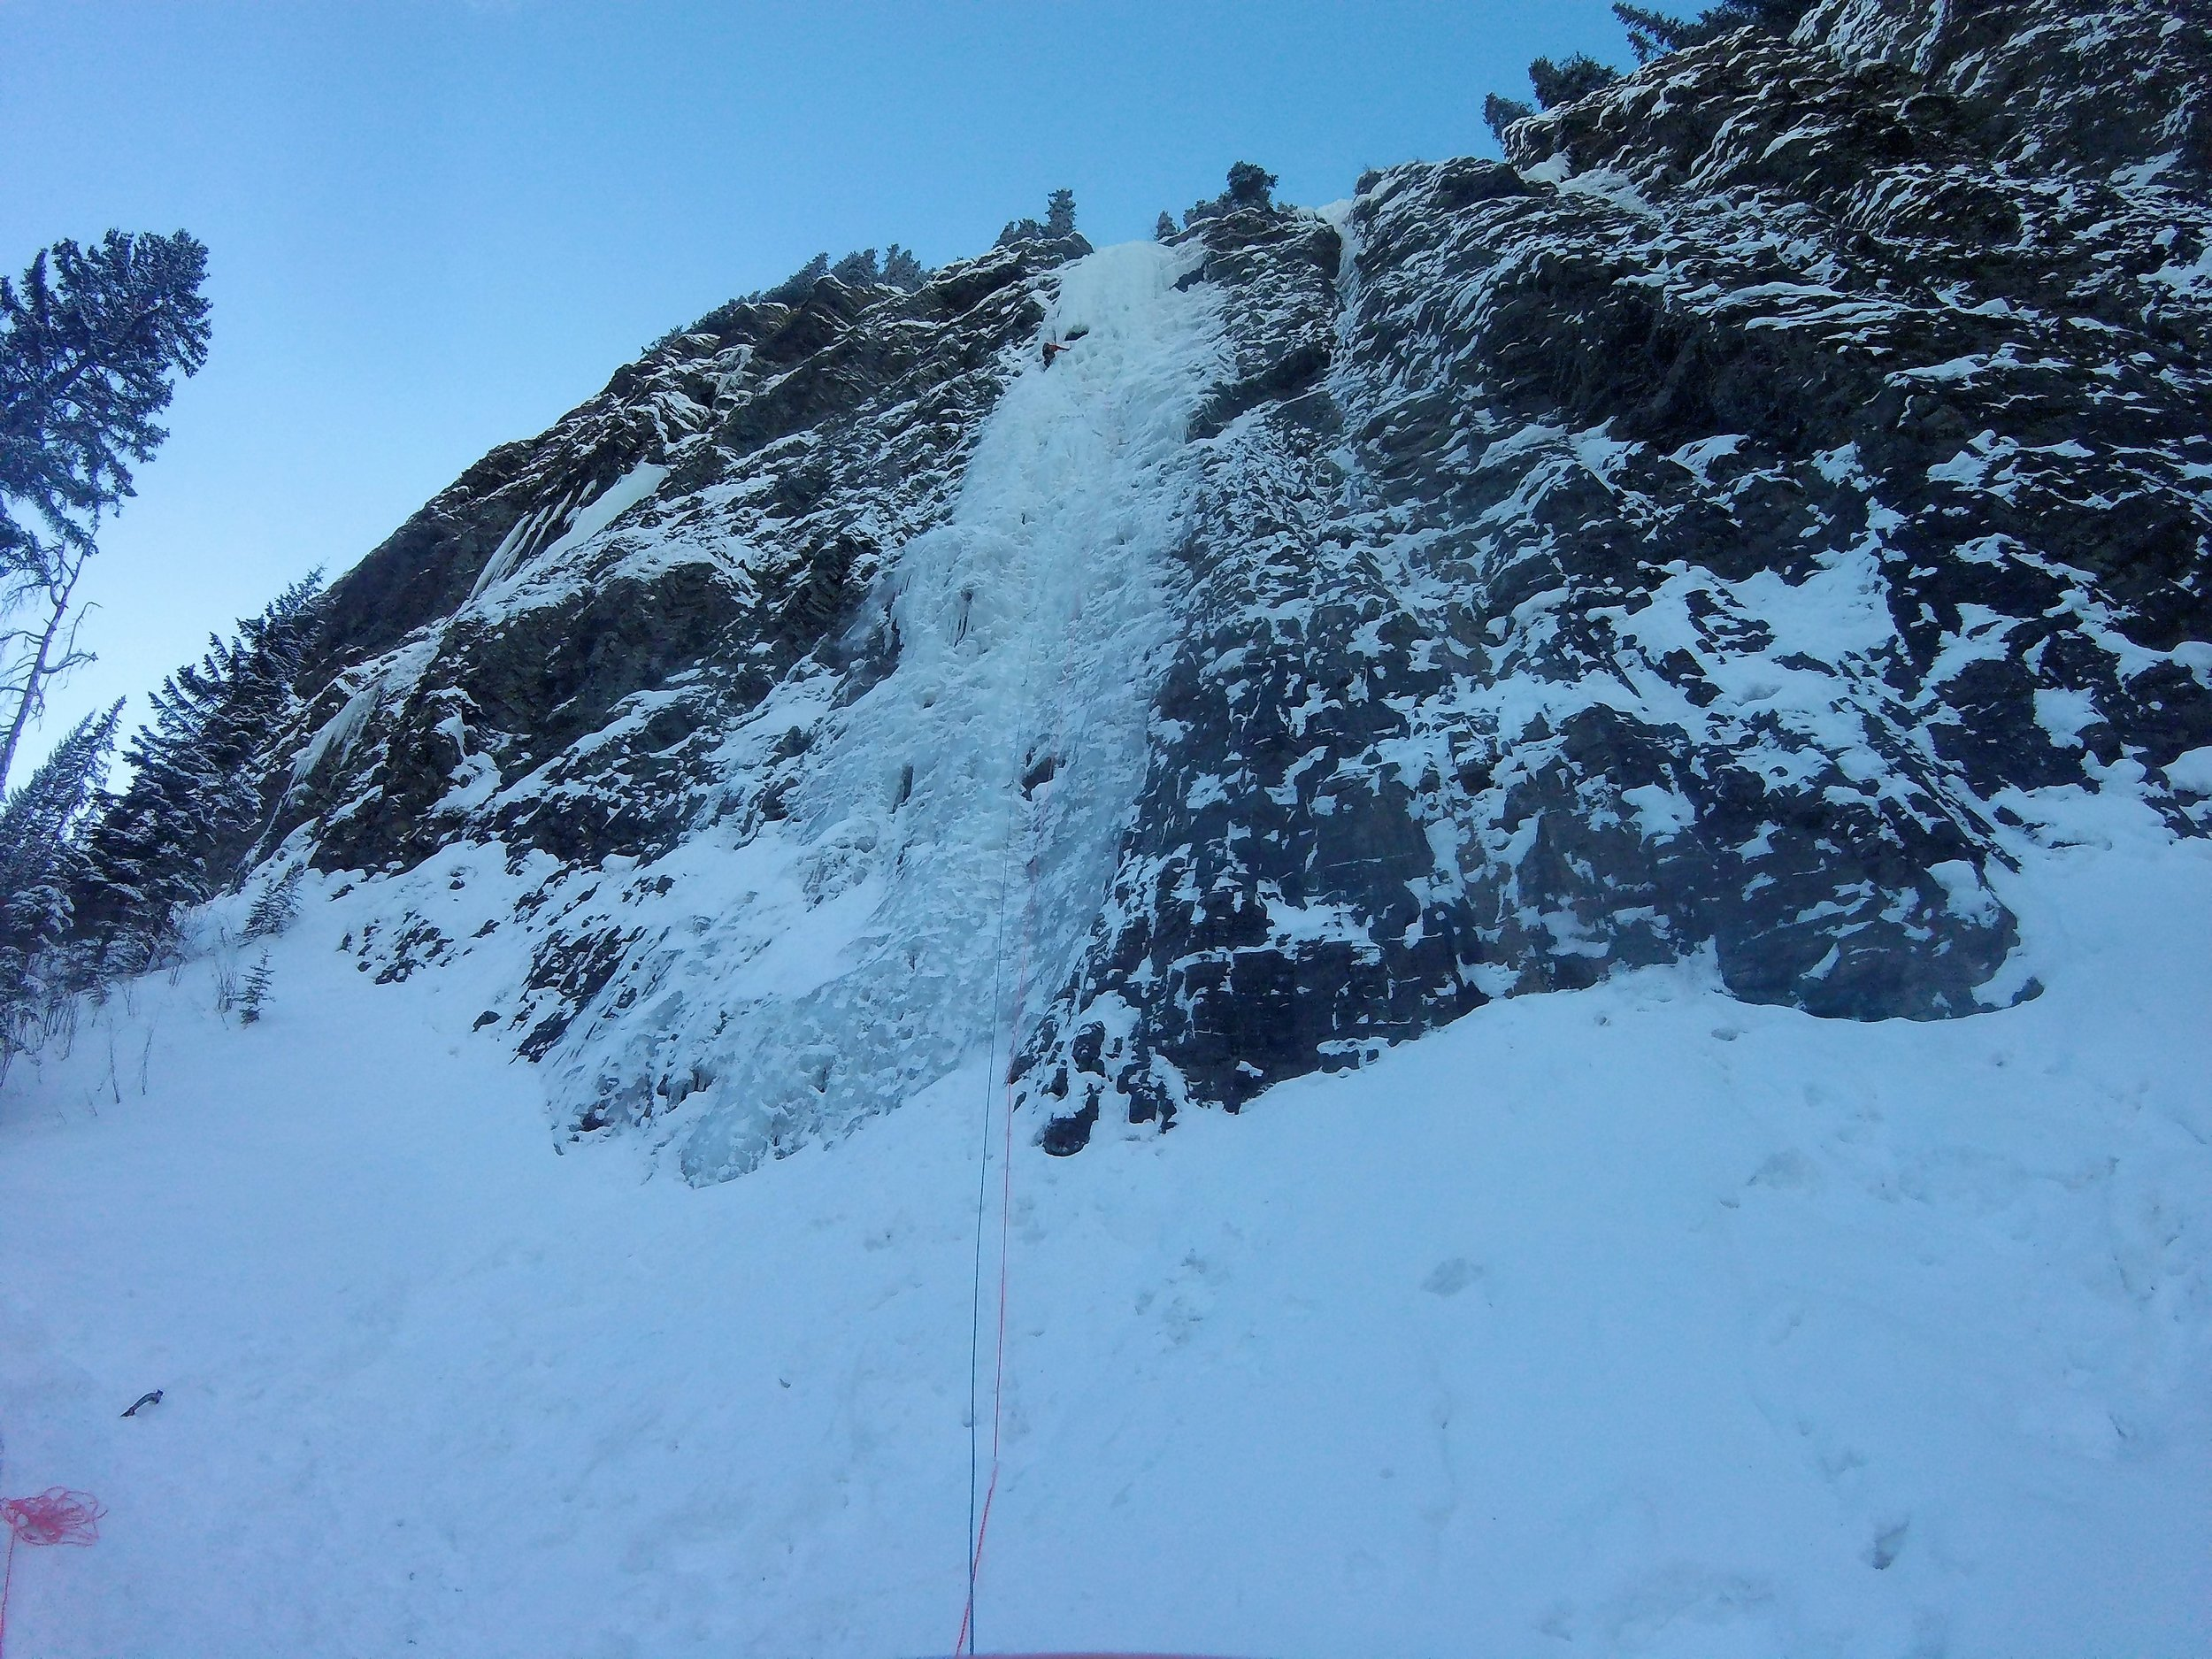 Moonlight (100m, WI4+). James heading to the ice cave which marks the end of the first pitch.